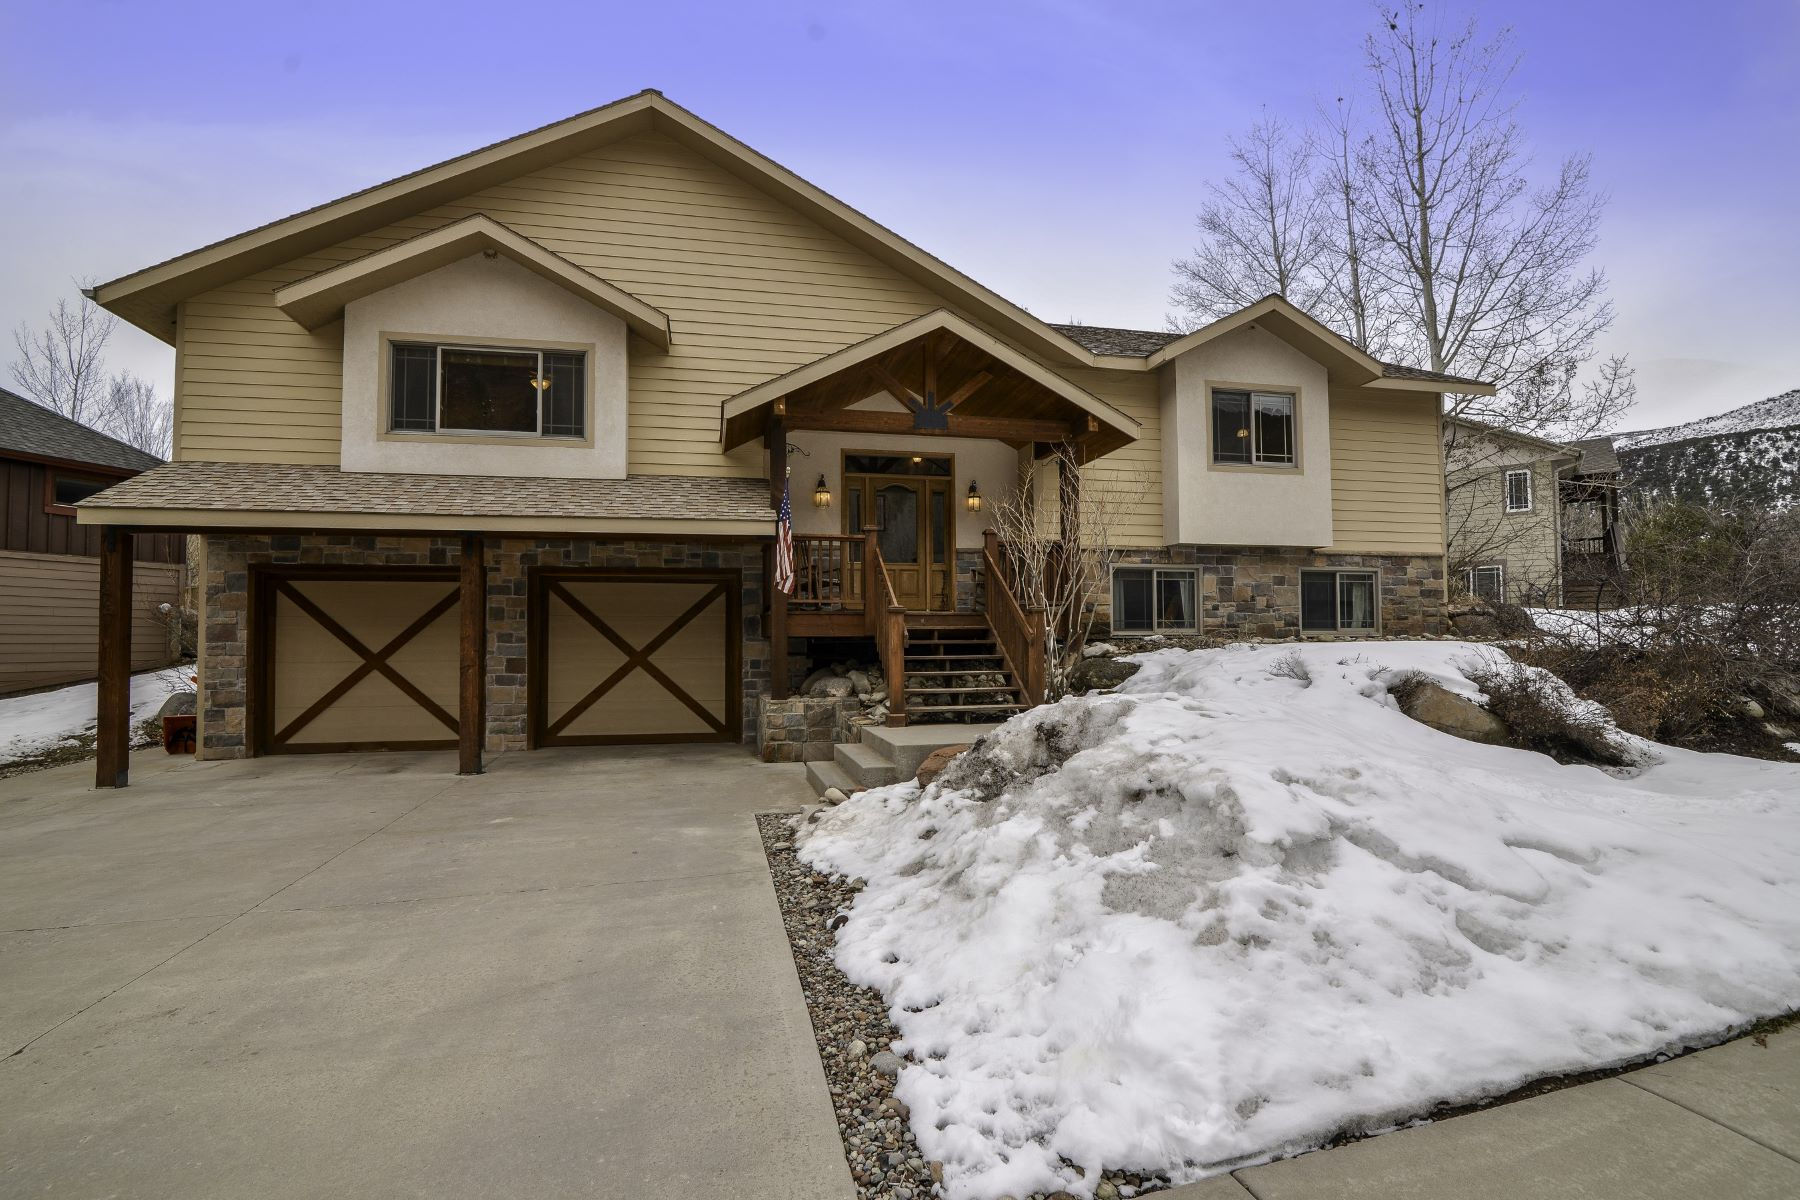 Single Family Homes for Active at Park East Charmer 3955 Sky Ranch Drive Glenwood Springs, Colorado 81601 United States